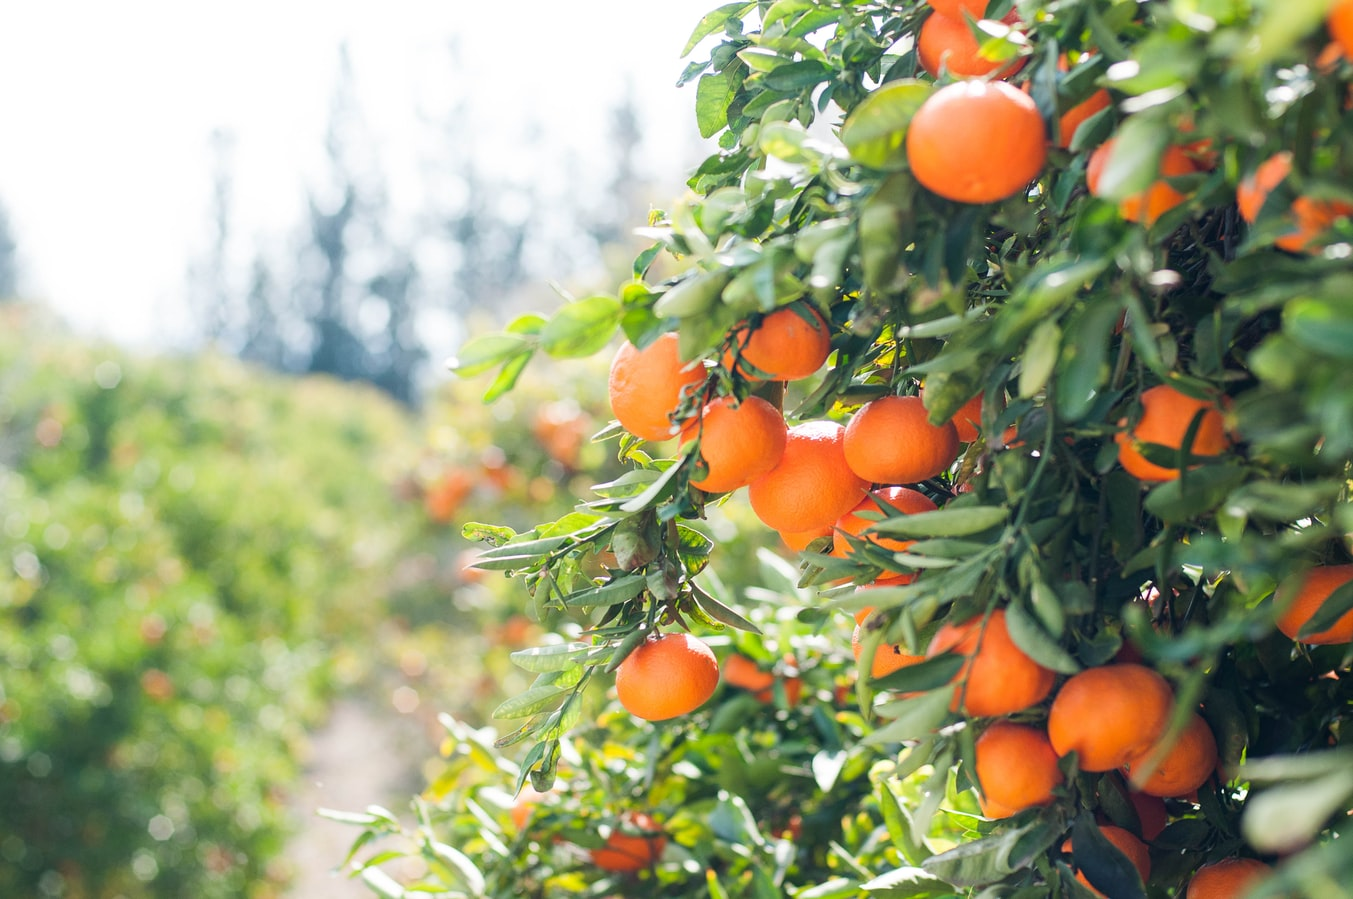 Citrus Farmers Facing Deadly Bacteria Turn to Antibiotics, Alarming Health Officials